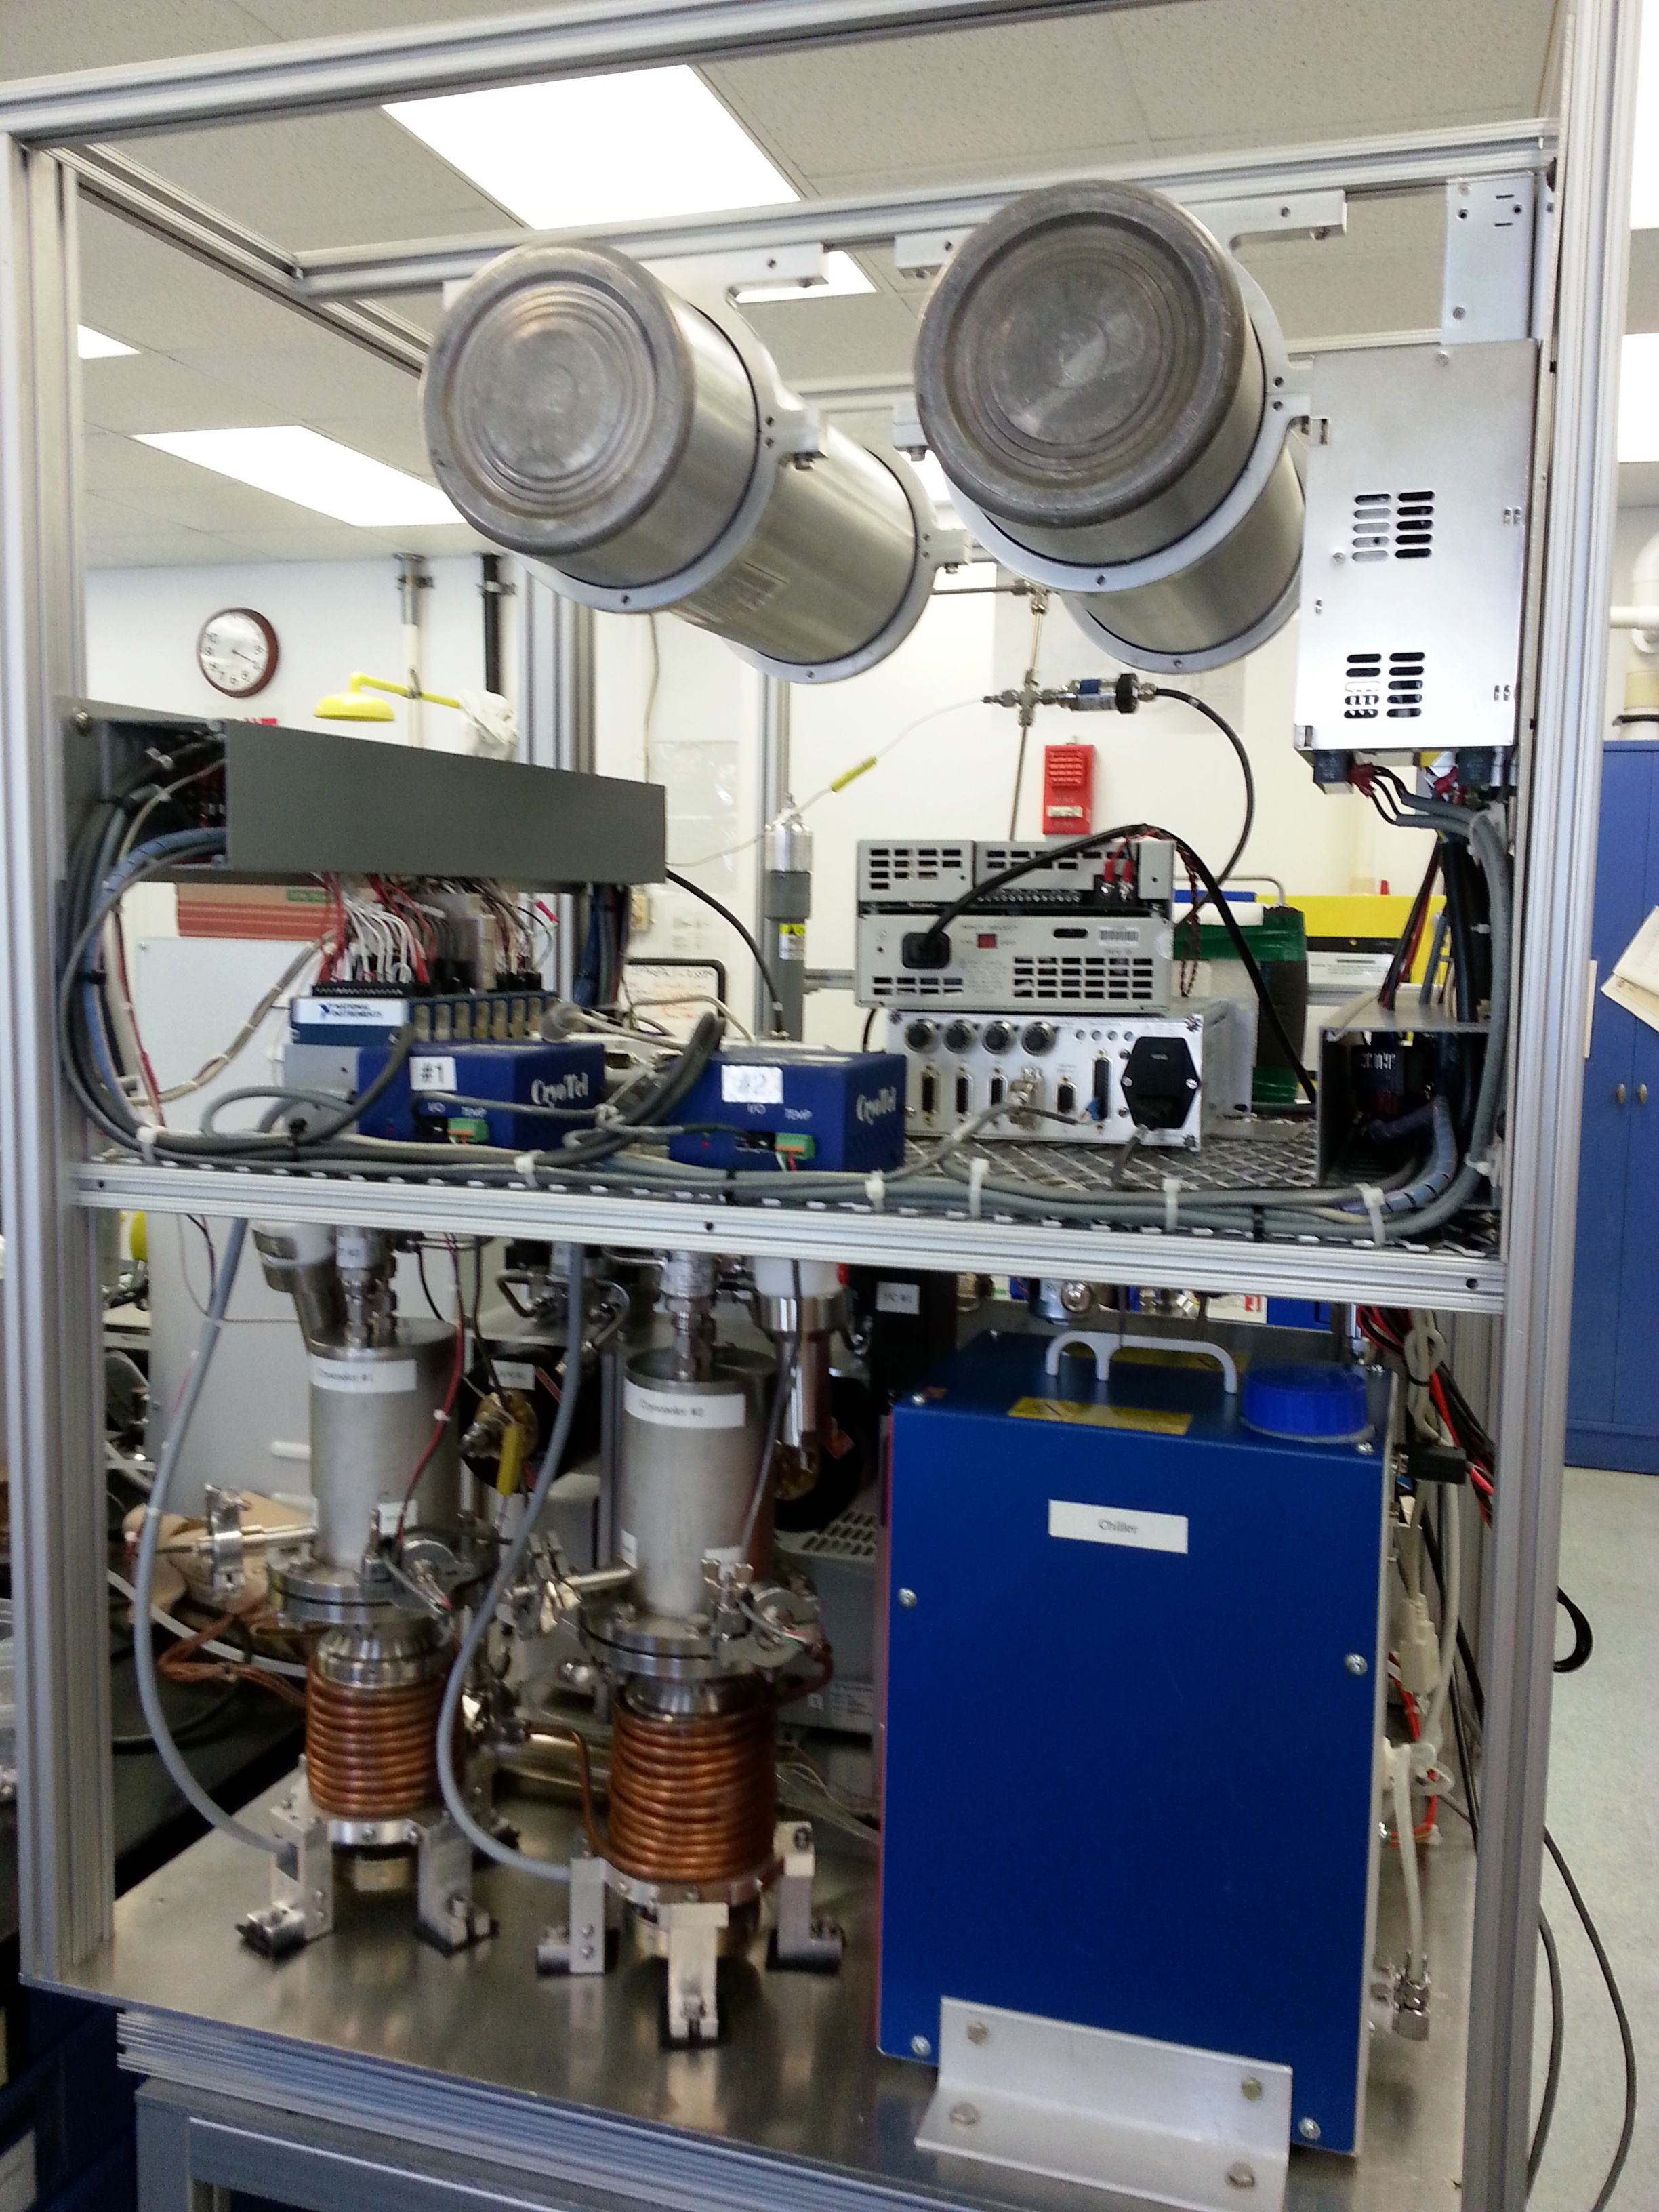 Photo of the MARCO POLO Atmospheric Processing Module CO2 Freezer Subsystem.  The two cryocoolers and freezing chambers are at the lower left.  The CO2 storage tanks are at the top.